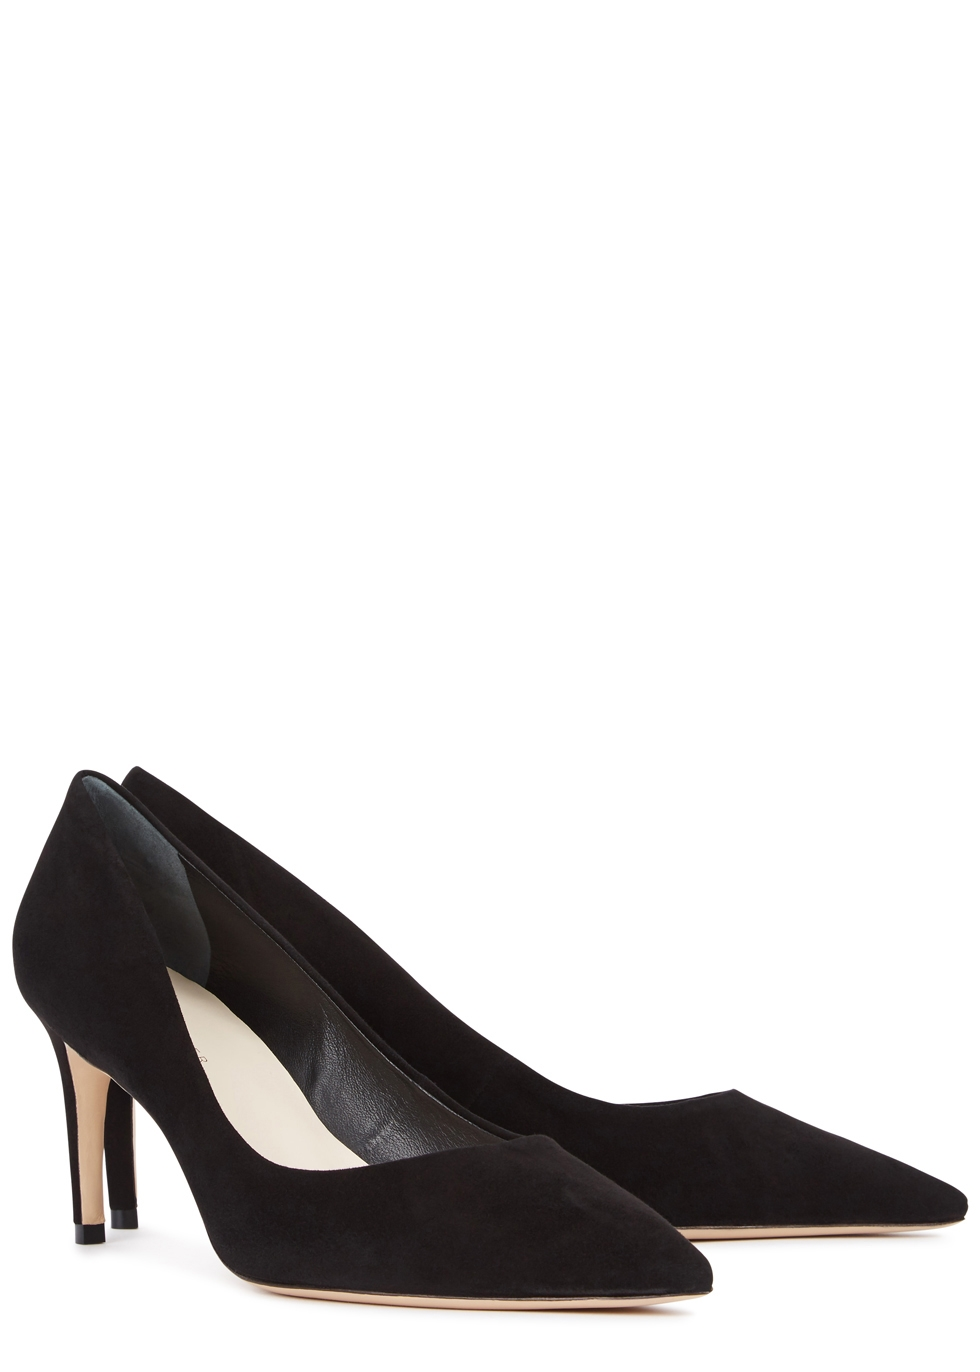 Rio 75 black suede pumps - Sophia Webster